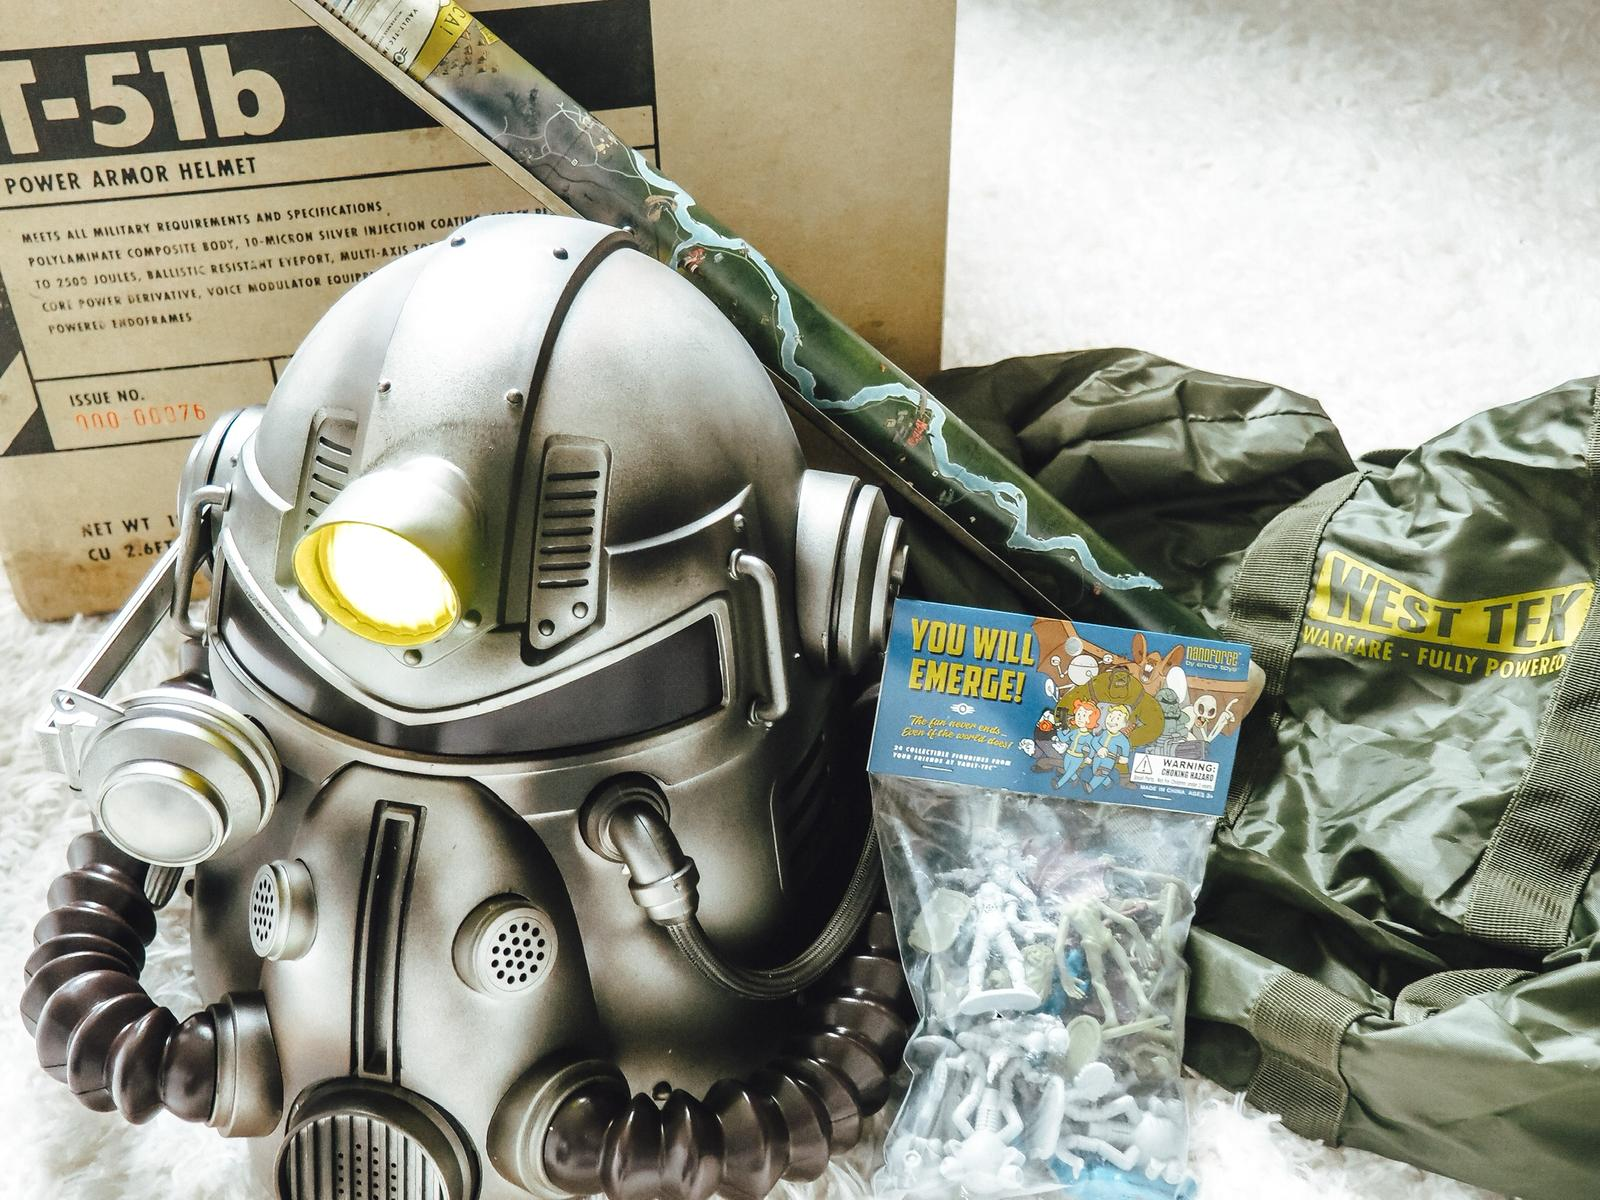 Die Collectors Edition Fallout 76 Power Armor Edition.